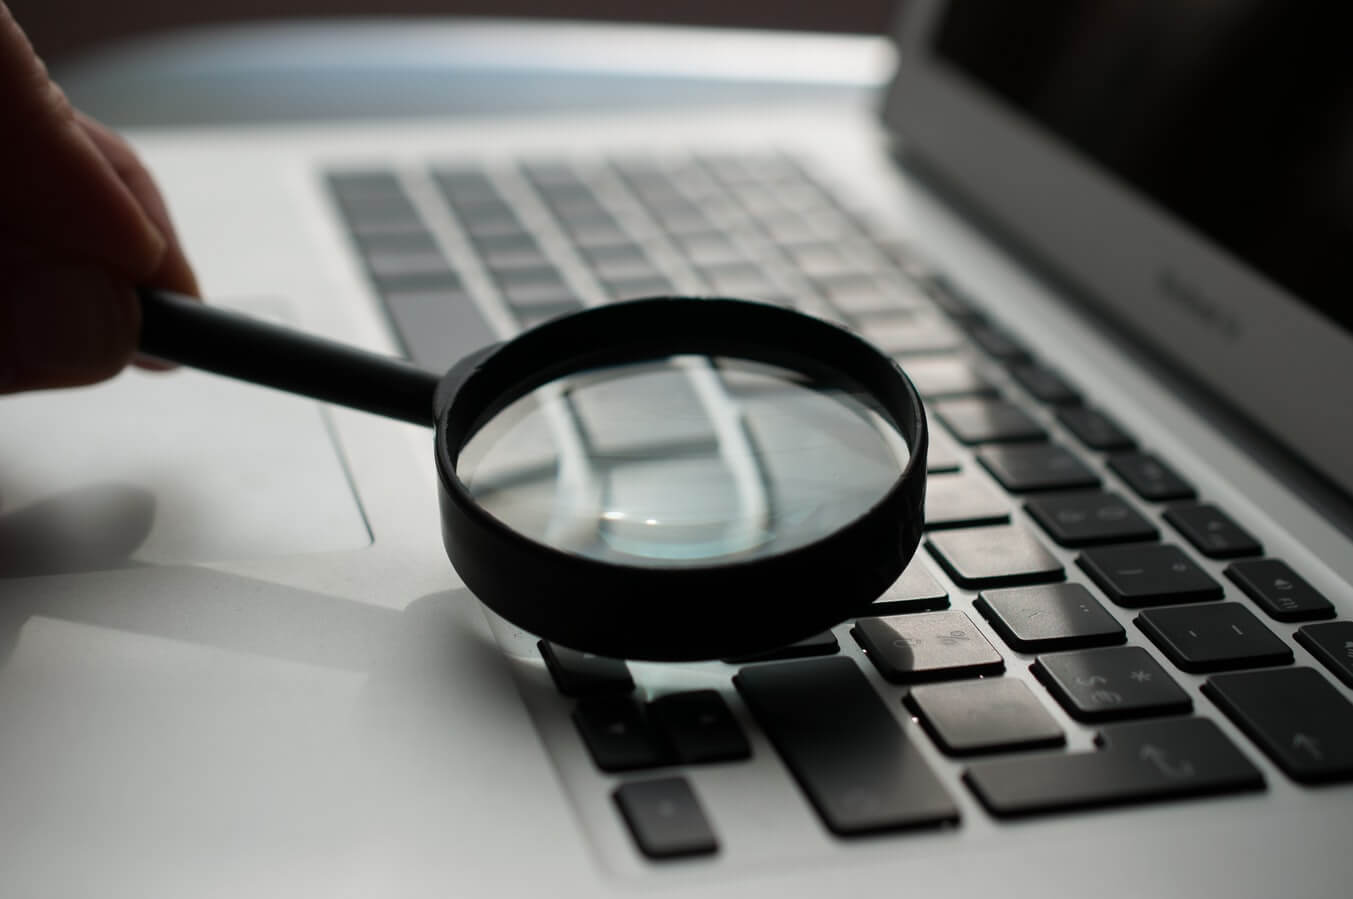 Local market research magnifying glass on laptop